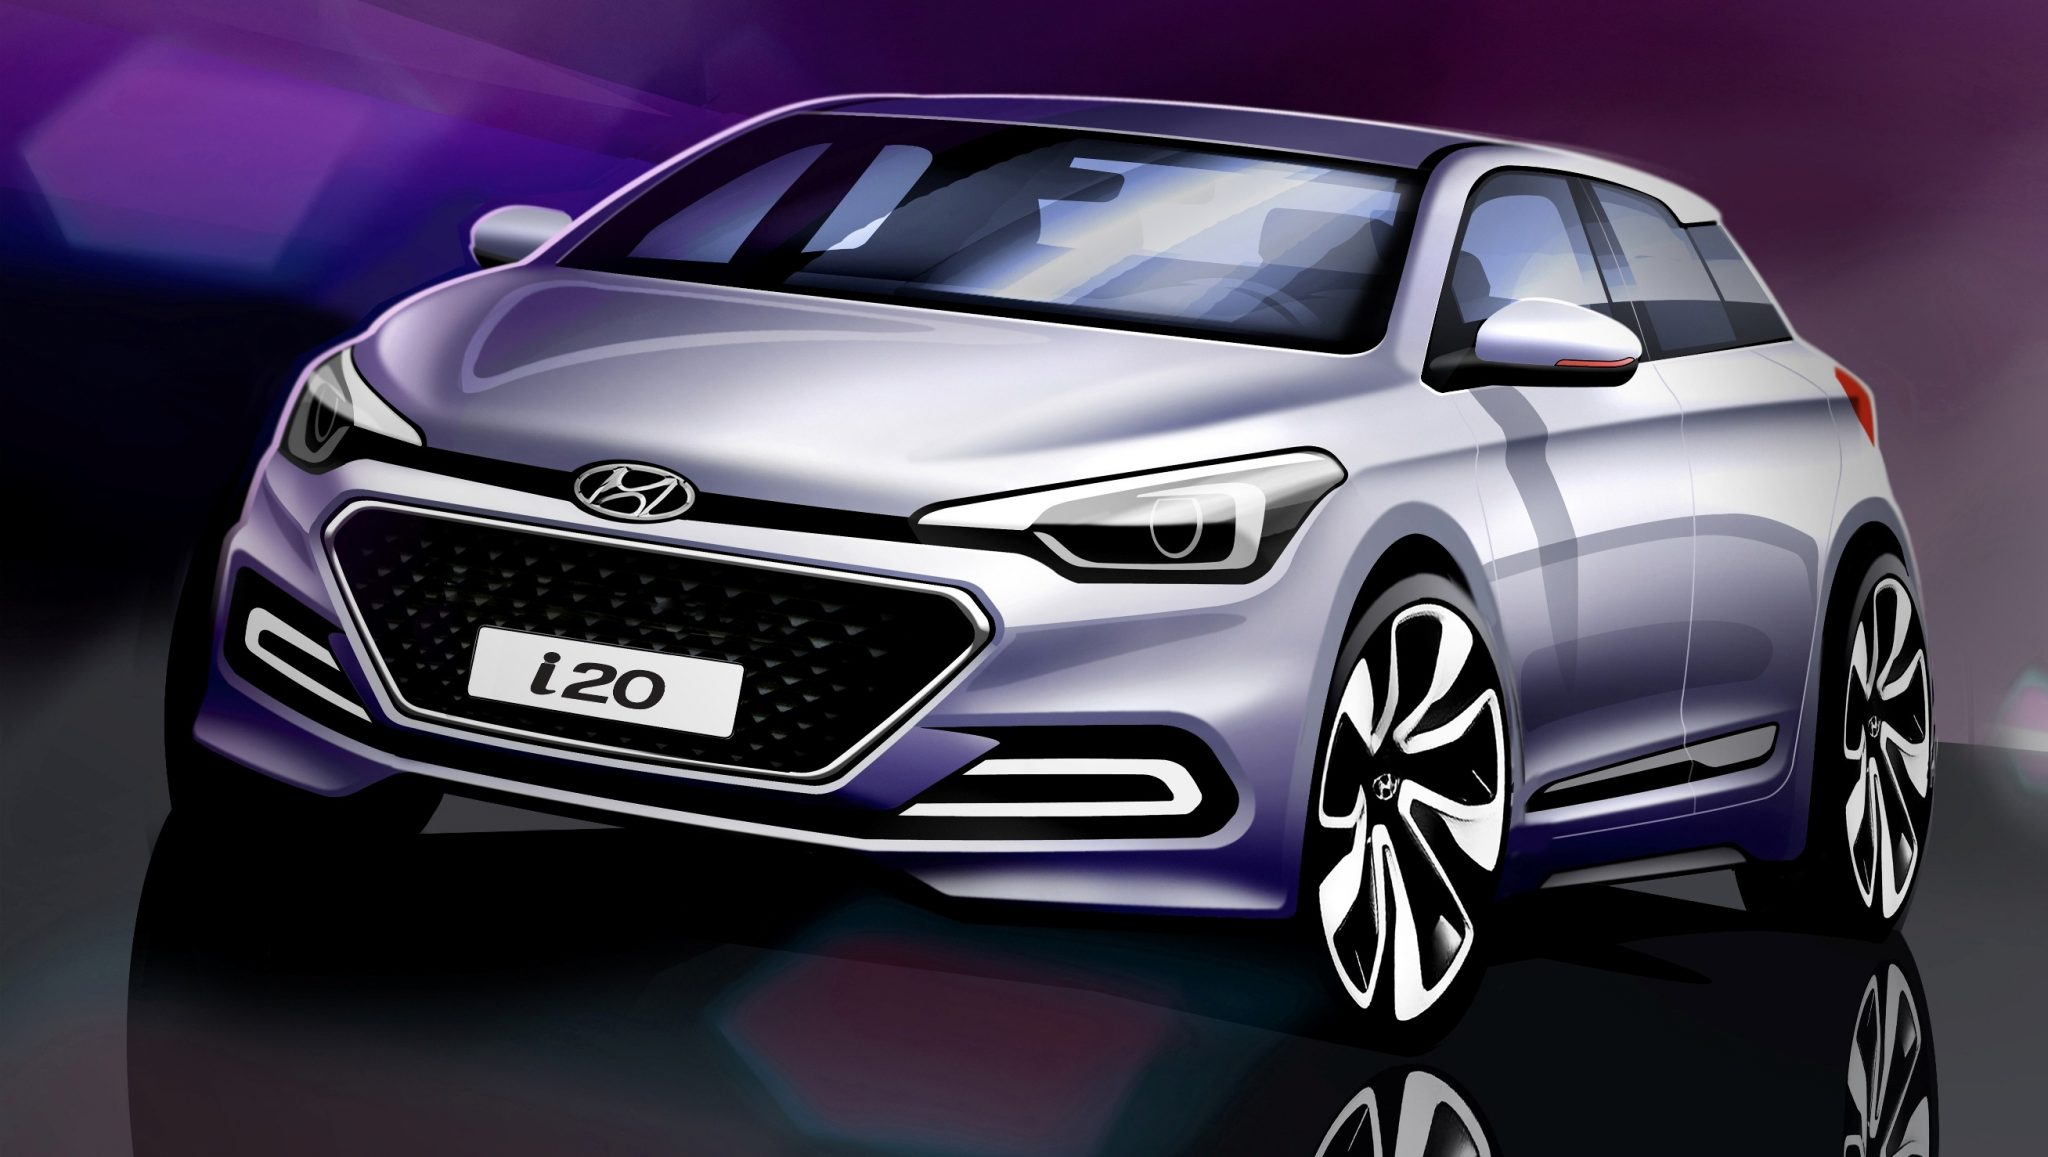 all new hyundai i20 sketches hint at design the news wheel. Black Bedroom Furniture Sets. Home Design Ideas